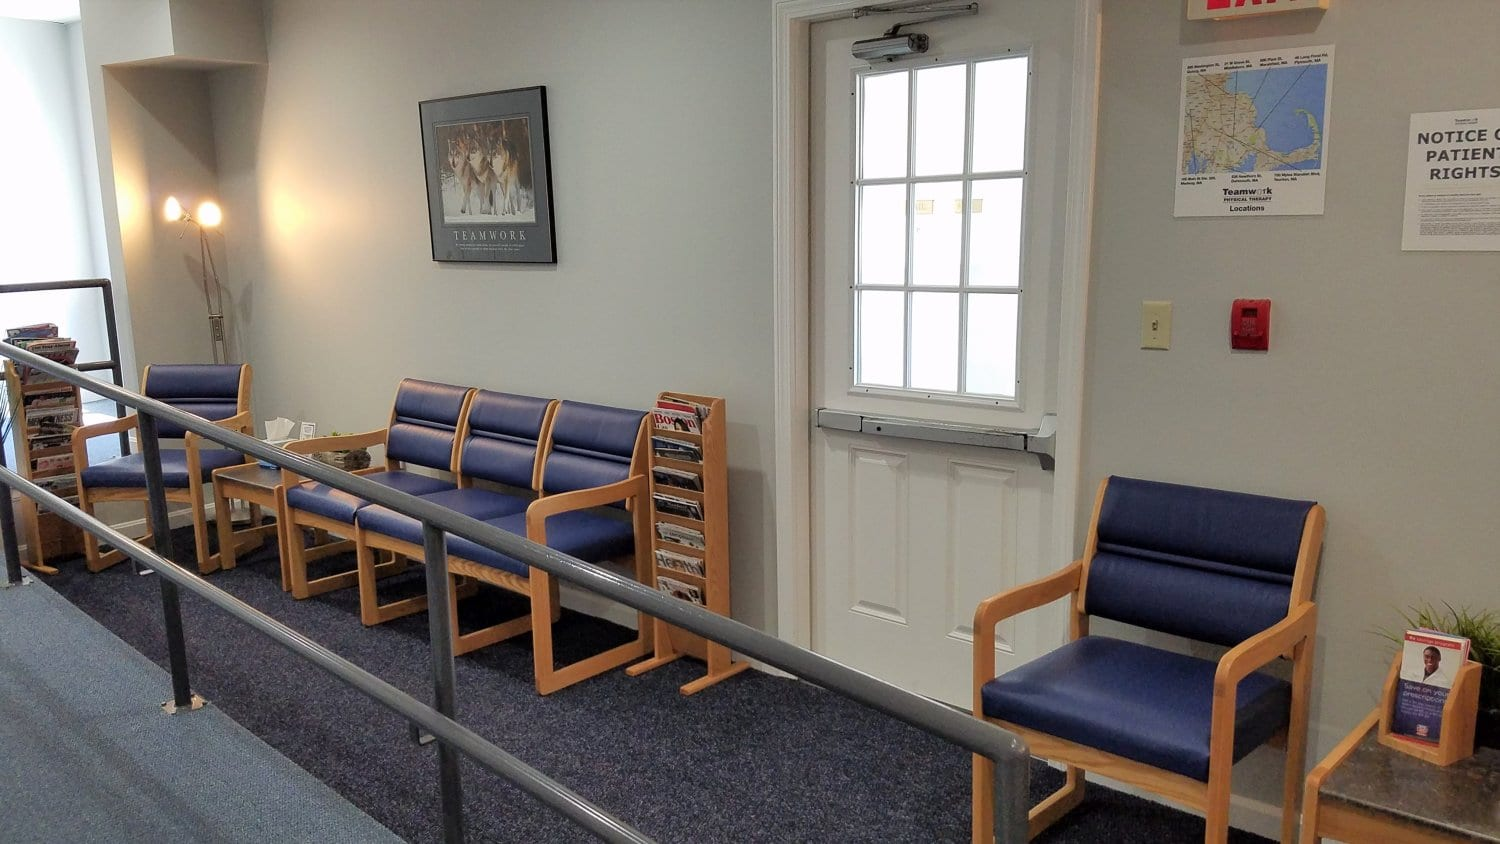 A photo of the waiting area at our physical therapy clinic in Middleboro, Massachusetts.